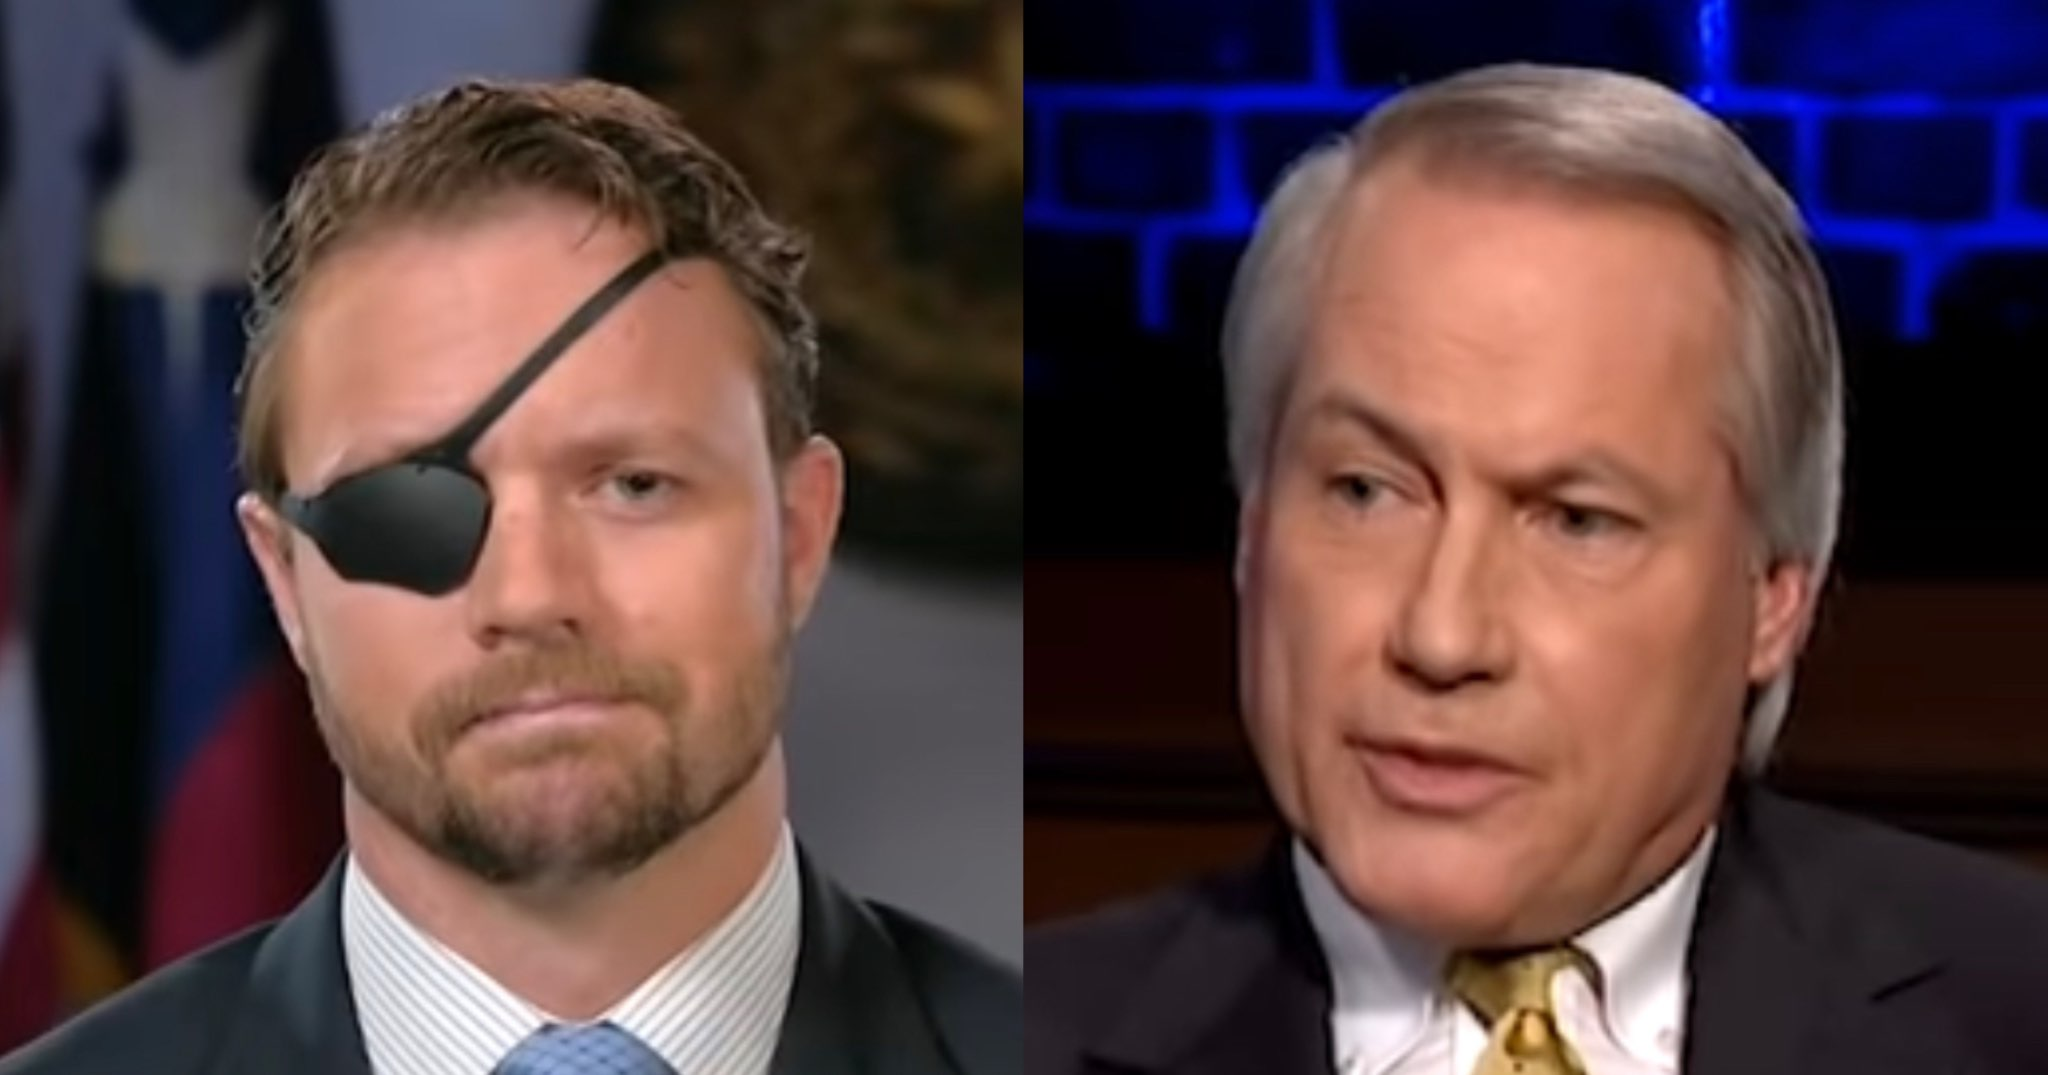 Dan Crenshaw Learns the Hard Way not to Go After Lin Wood as Twitter Responds With the Fury - Media Right News